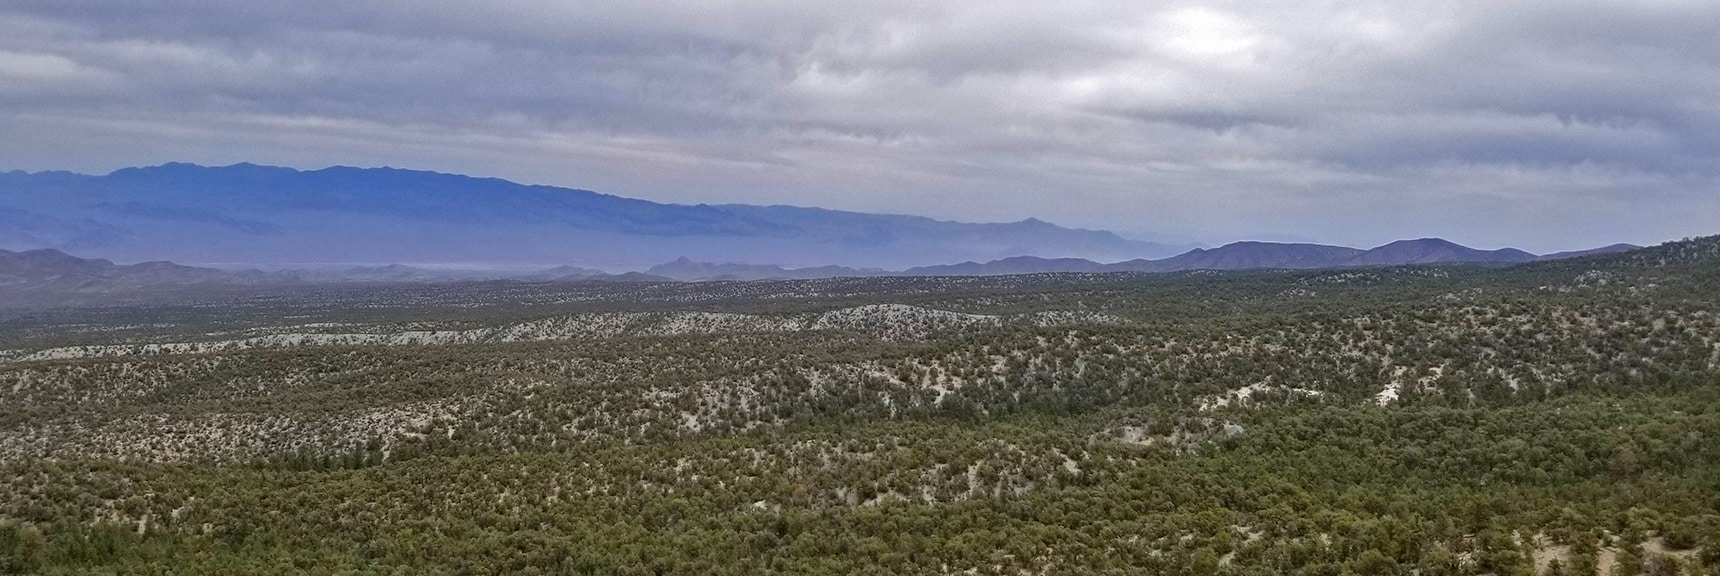 Mid Sheep Range to Gass Peak Viewed from 9,235ft High Point Bluff   Sawmill Trail to McFarland Peak   Spring Mountains, Nevada